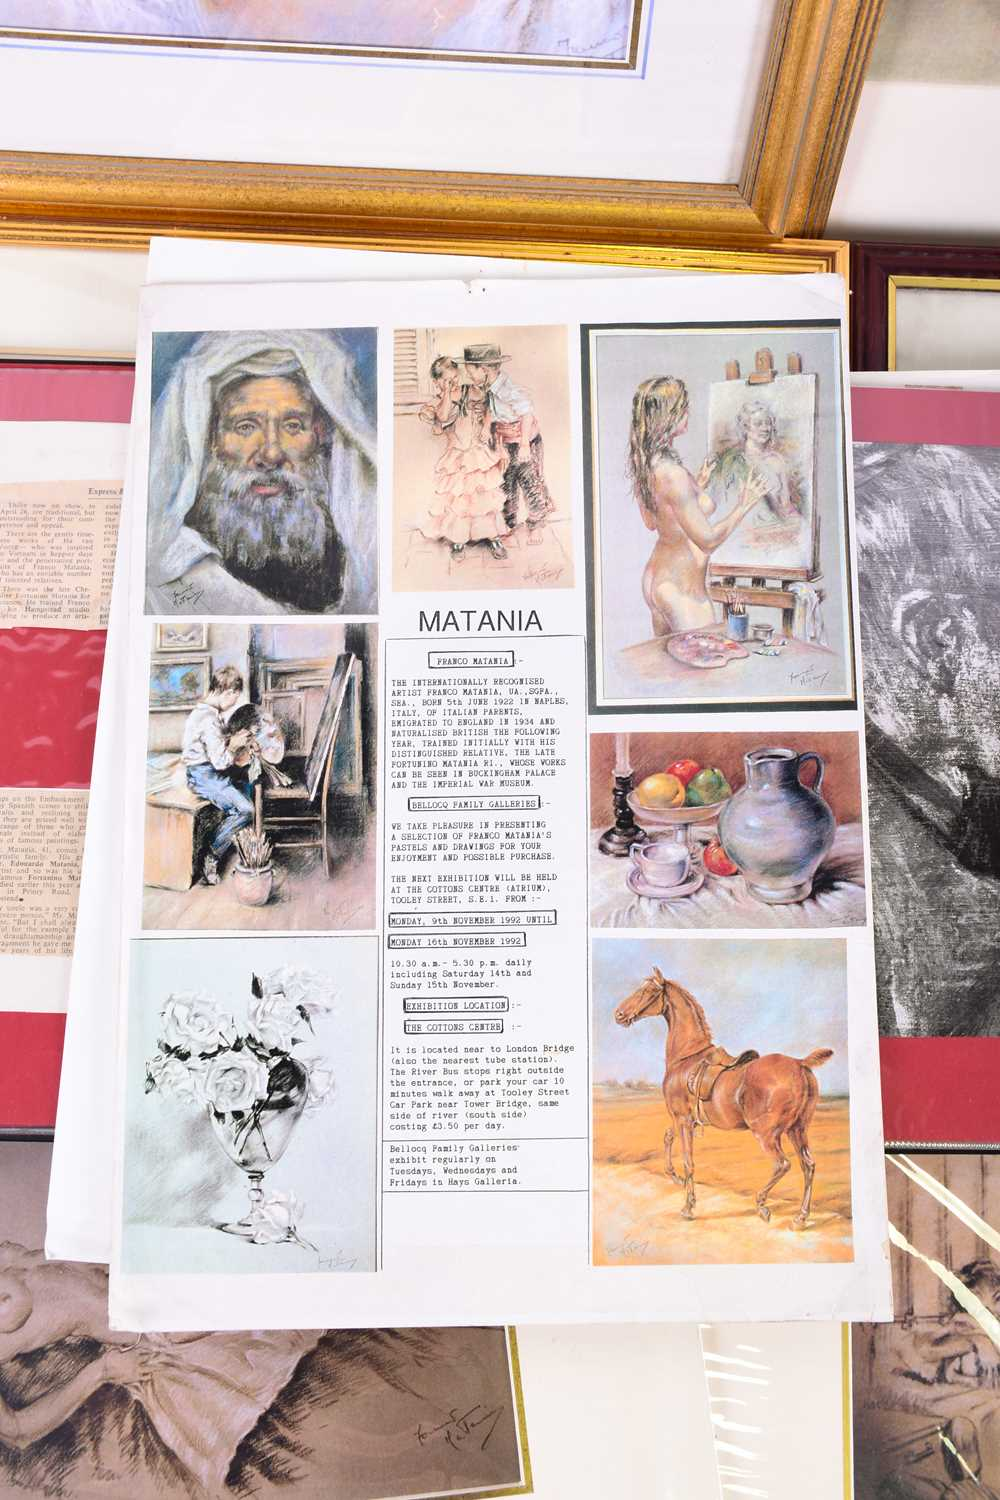 Lot 37 - A quantity of archive material relating to the life and work of artist Franco Matania (1922-2006),